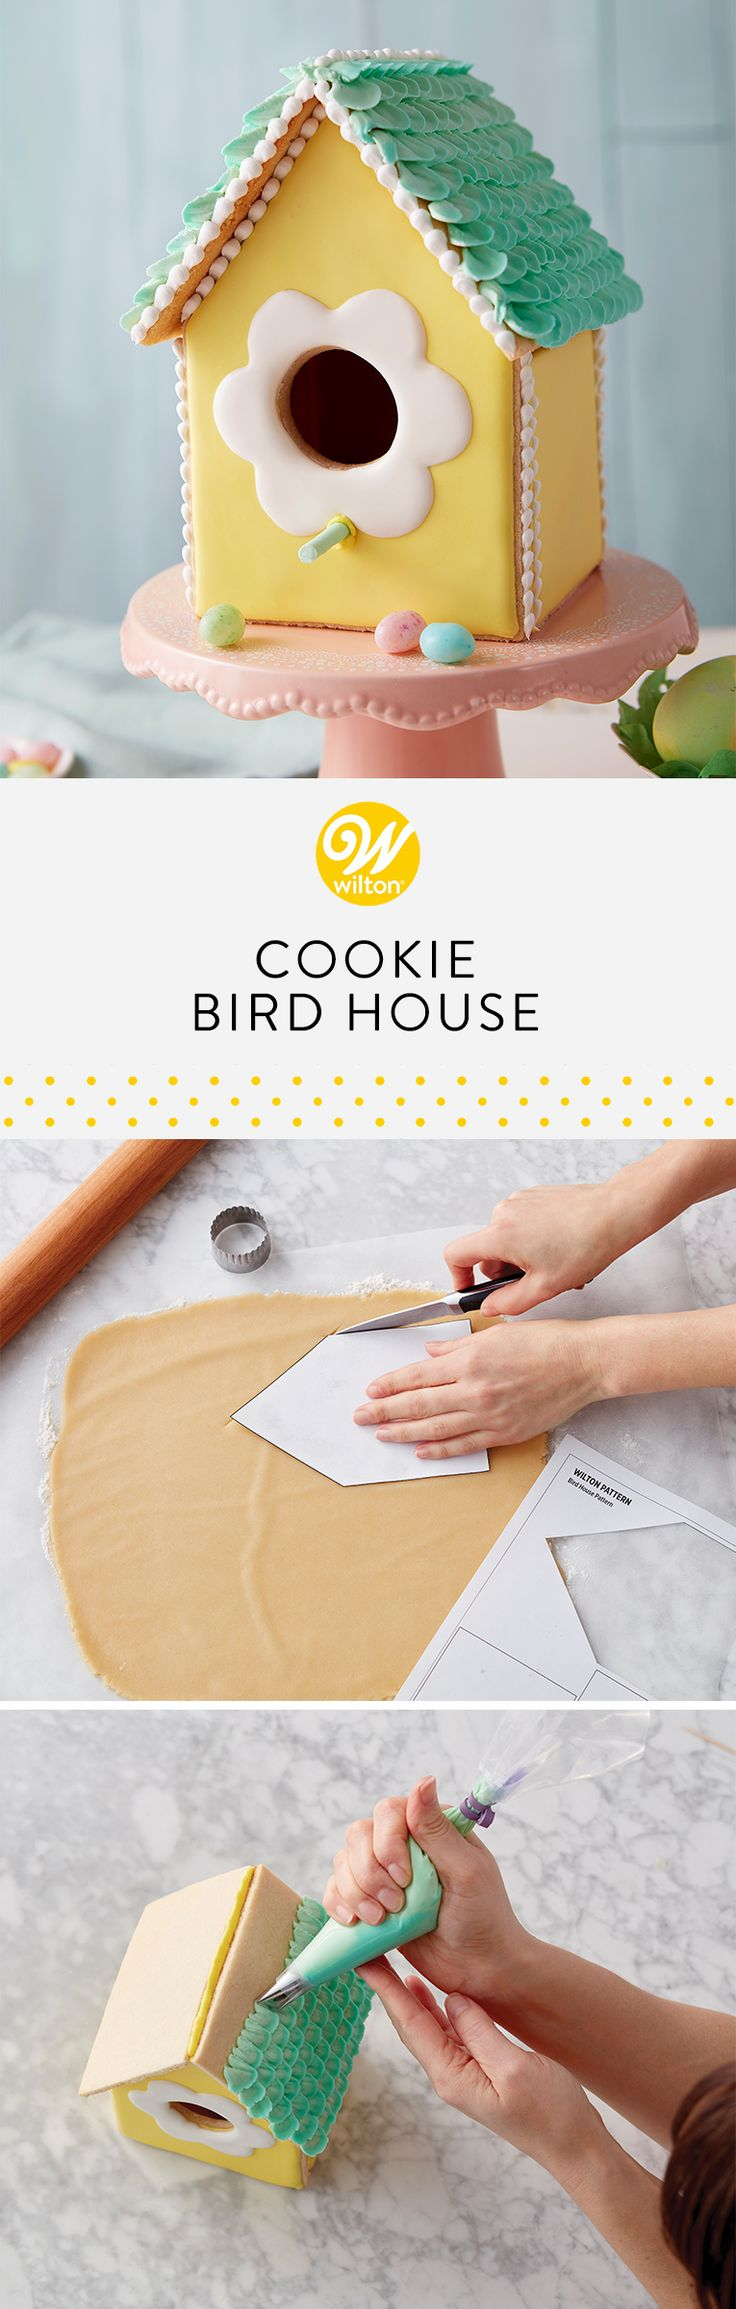 Create a springtime memory and a new holiday tradition by getting the family together to bake, build and decorate a cookie birdhouse. Construction is easy, using the birdhouse patterns, the roll-out cookie recipe and royal icing recipe. Makes a great centerpiece (and dessert) for your Easter dessert table. #wiltoncakes #cookiehouse #cookieideas #easter #eastercookies #birdhouse #easterideas #easterdesserts #inspiration #springbaking